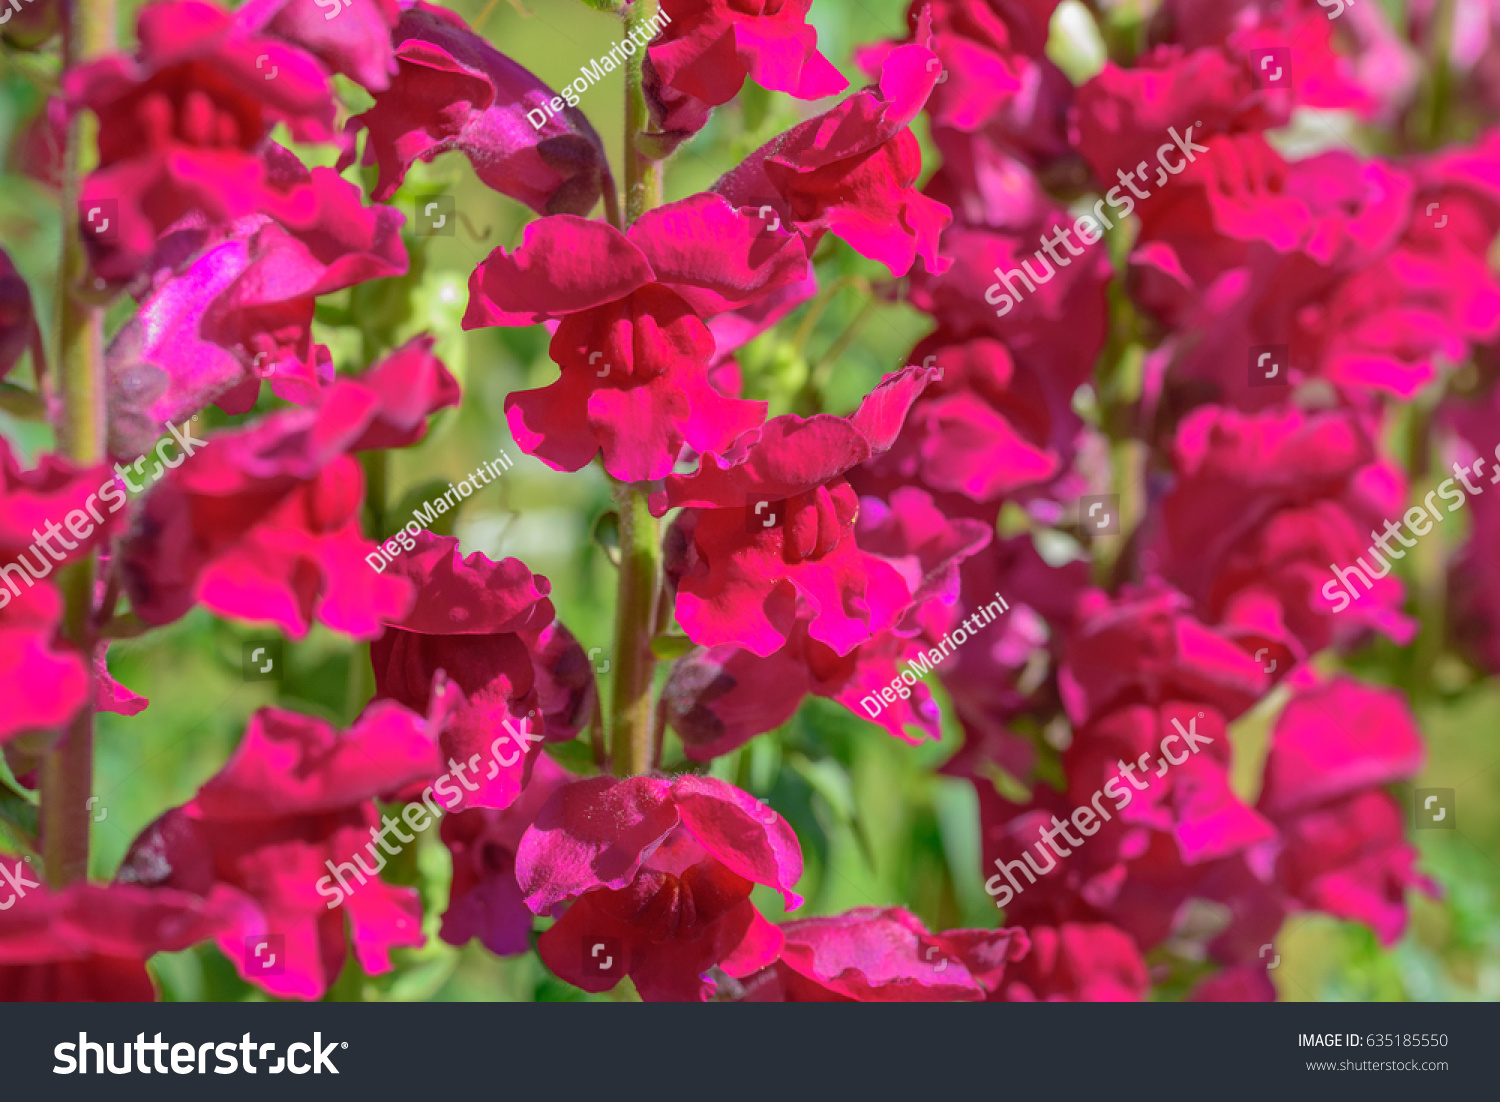 Flower of lily gallery flower wallpaper hd closeup colorful flowers lily lion antirrhinum stock photo 100 close up of colorful flowers of lily izmirmasajfo